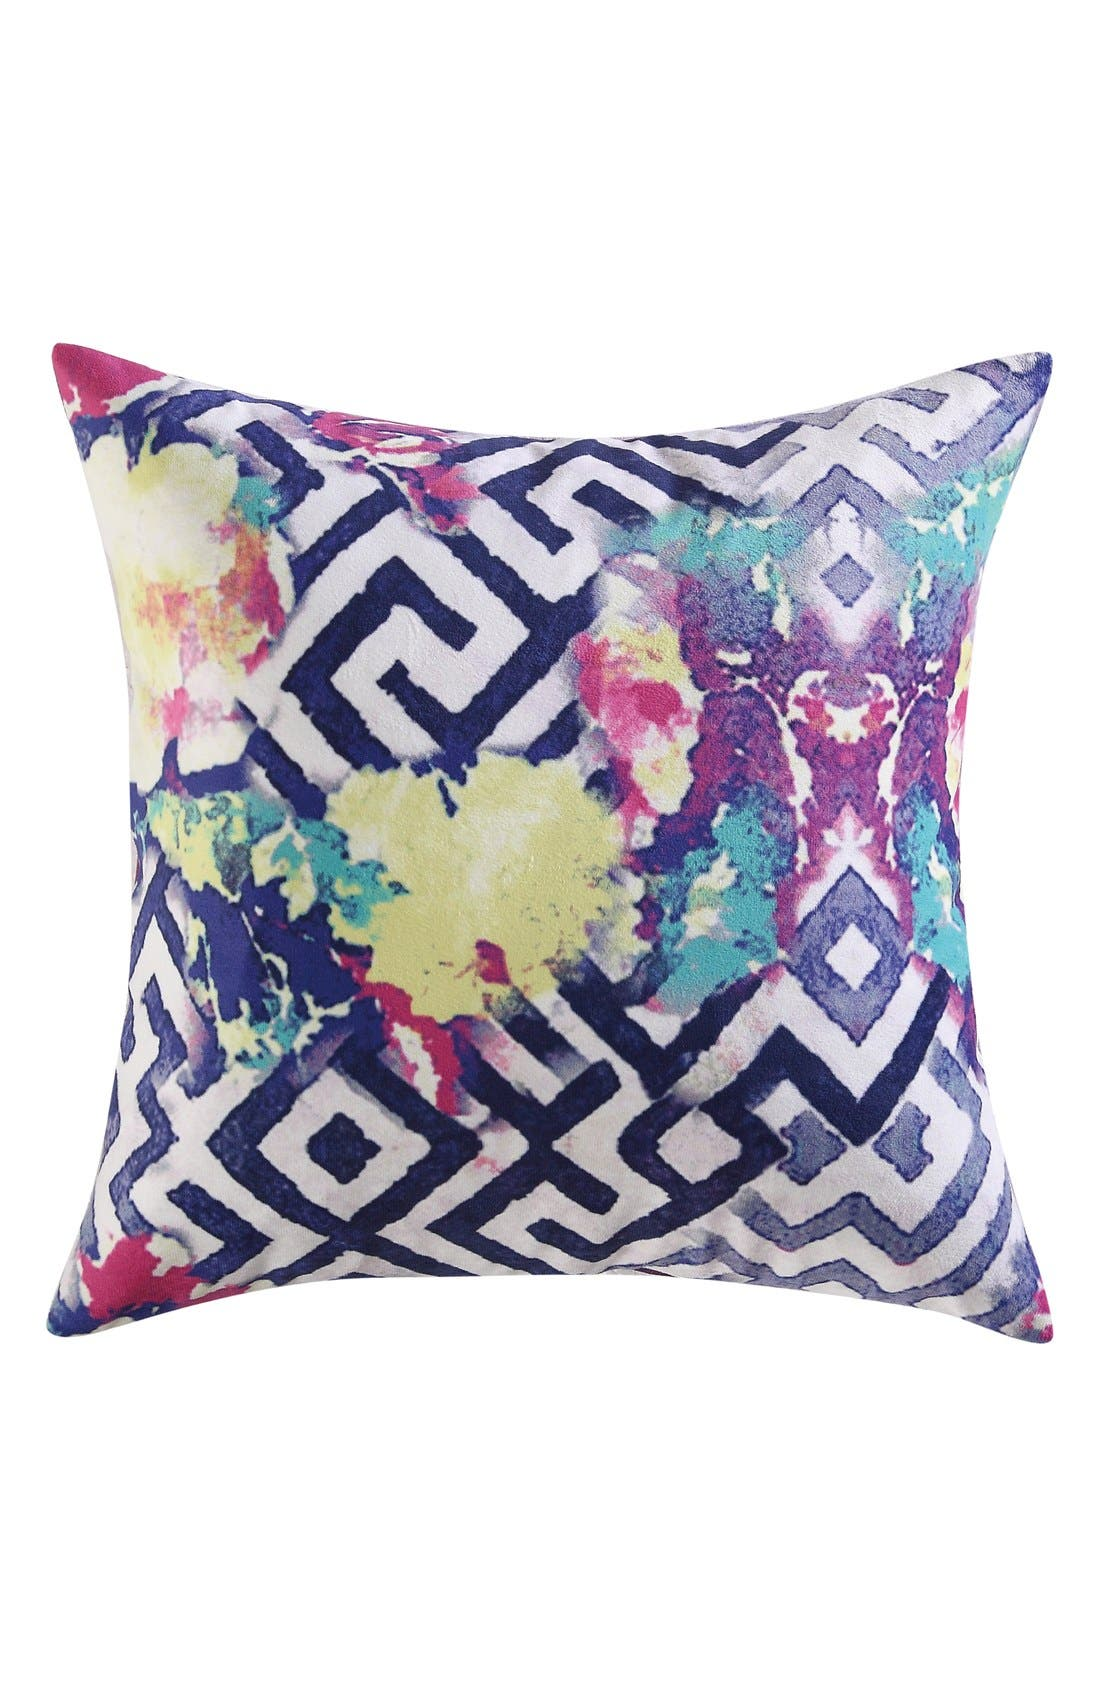 POETIC WANDERLUST Tracy Porter<sup>®</sup> For Poetic Wanderlust<sup>®</sup> 'Florabella' Velvet Pillow, Main, color, 440